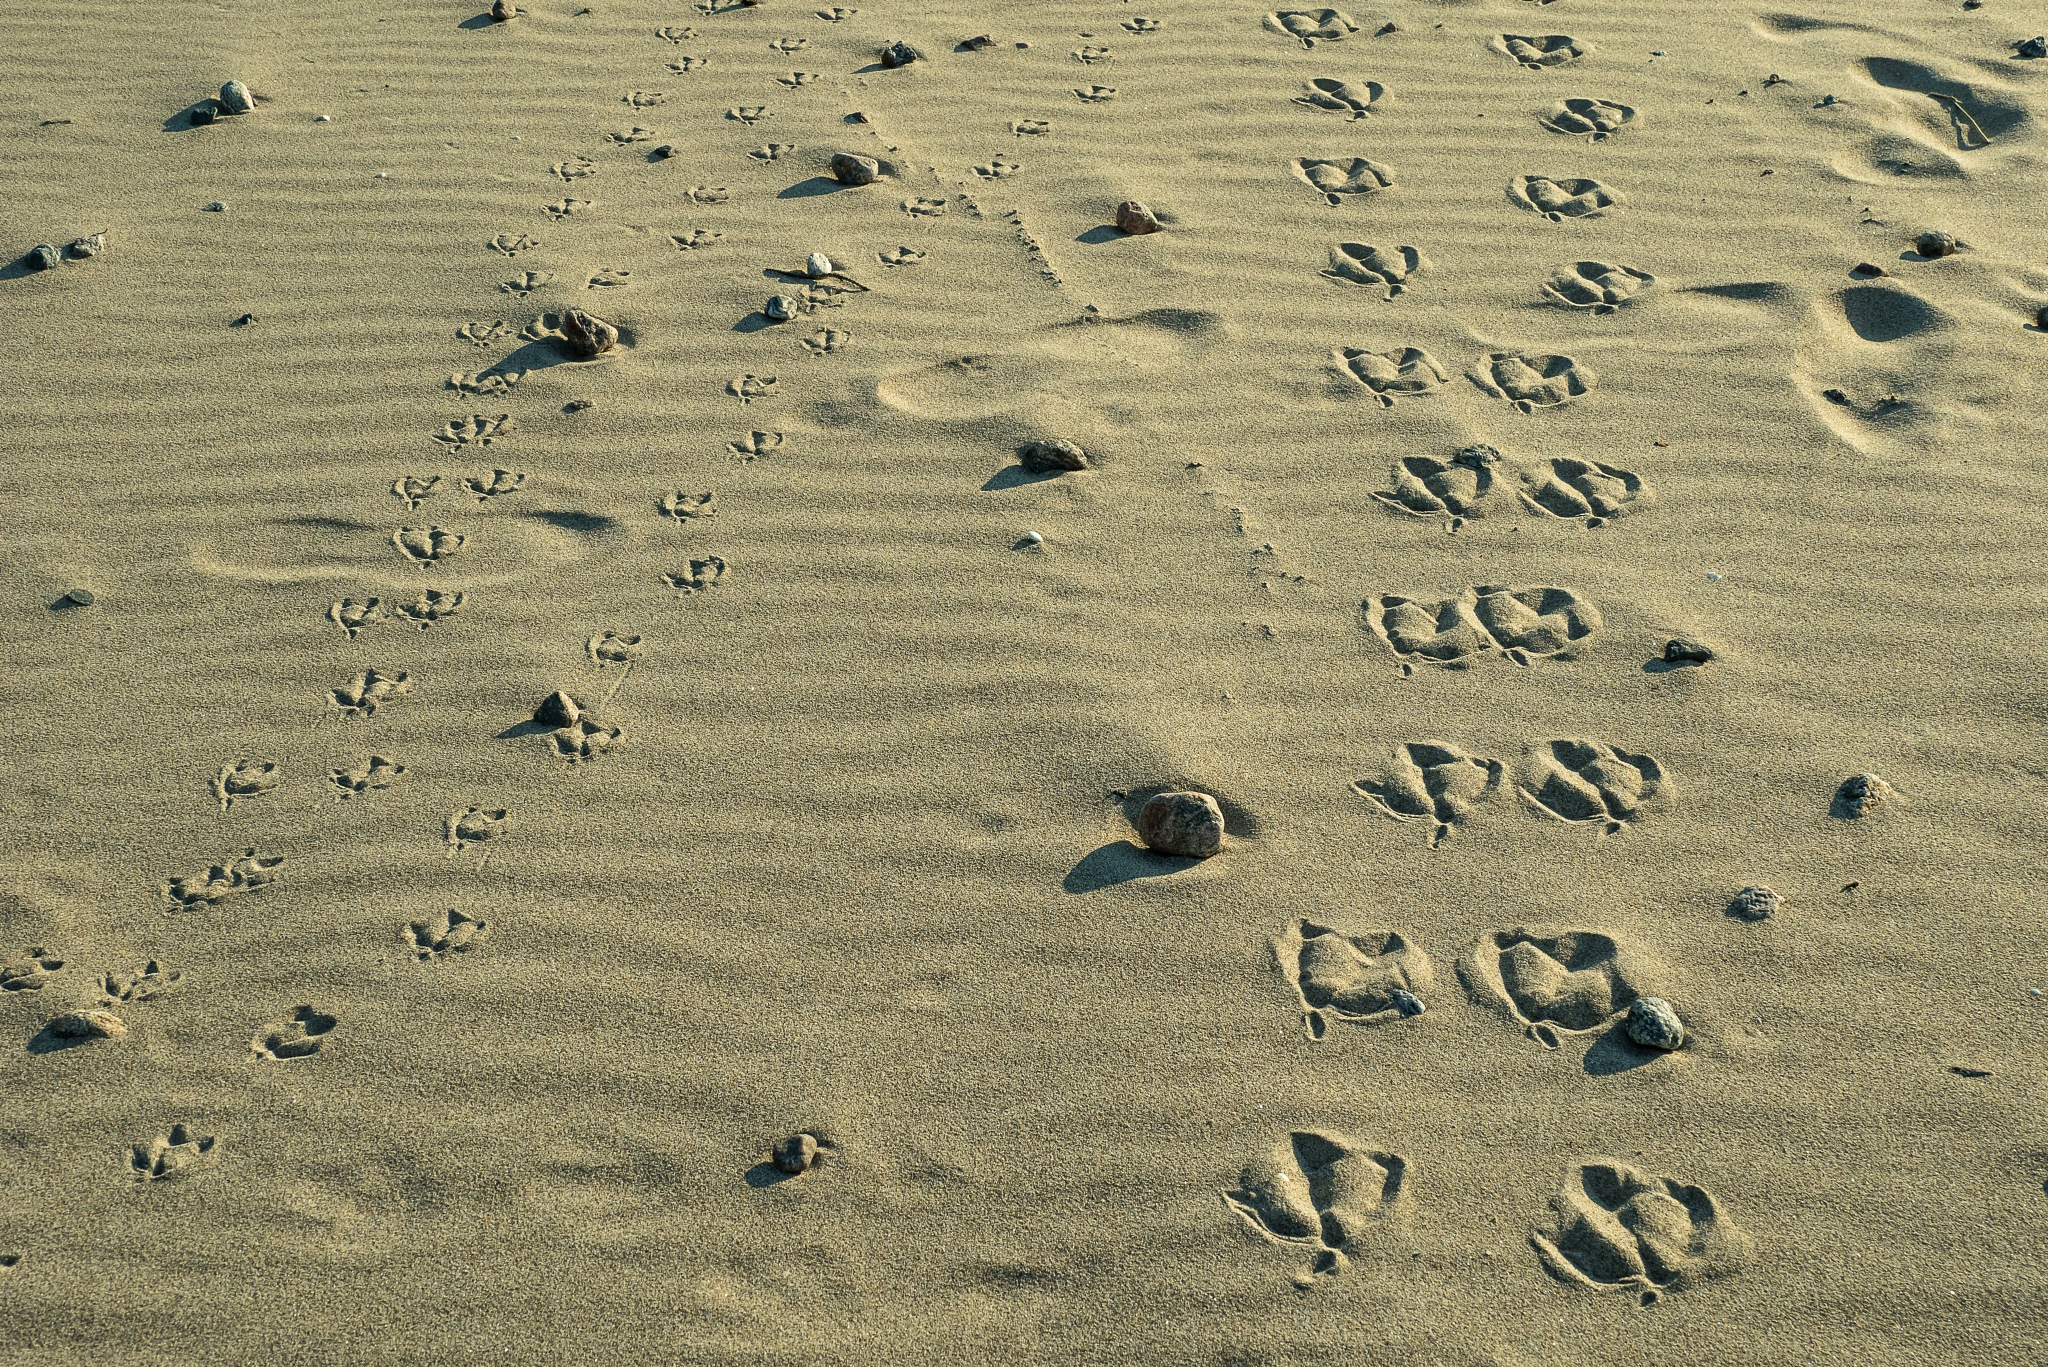 Family, tracks in the sand by Mats Bodlund